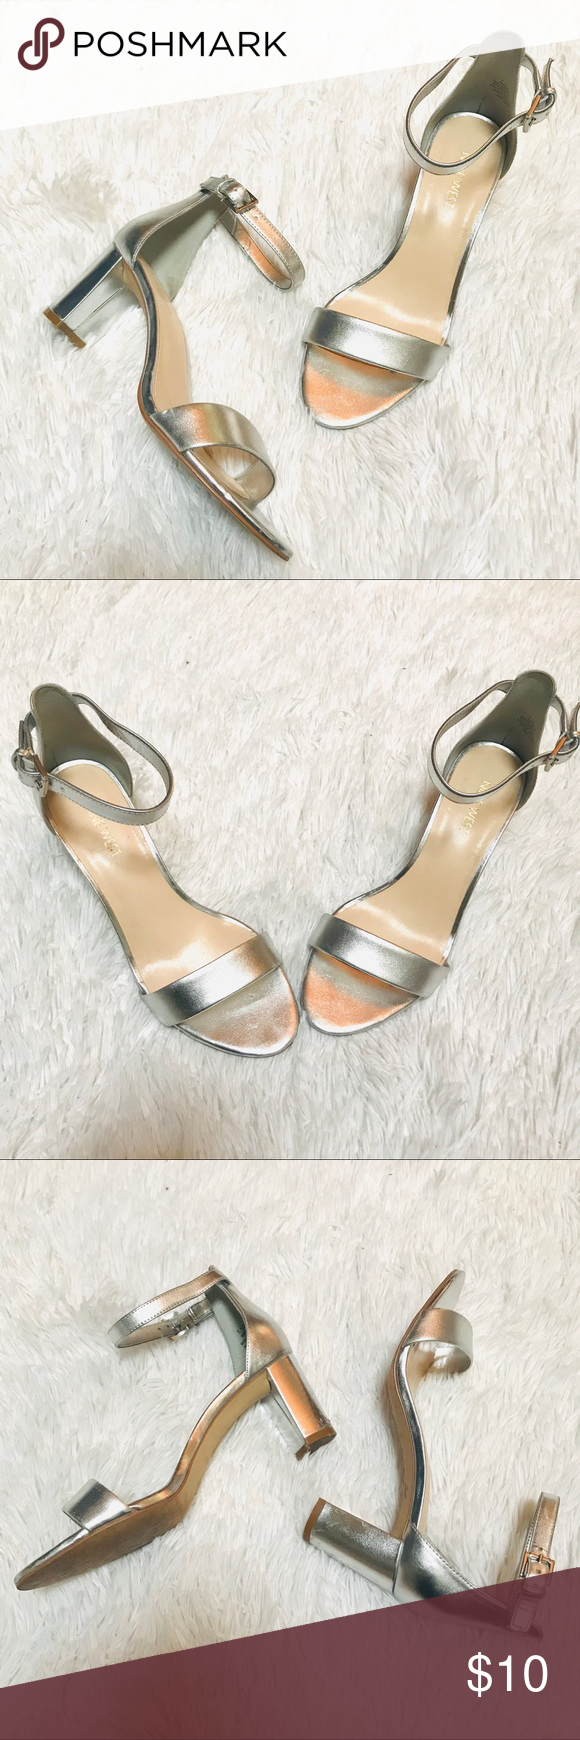 bfc08ae9aad NINE WEST Block heel silver heels They have small flaws on the heel  Reflected in price